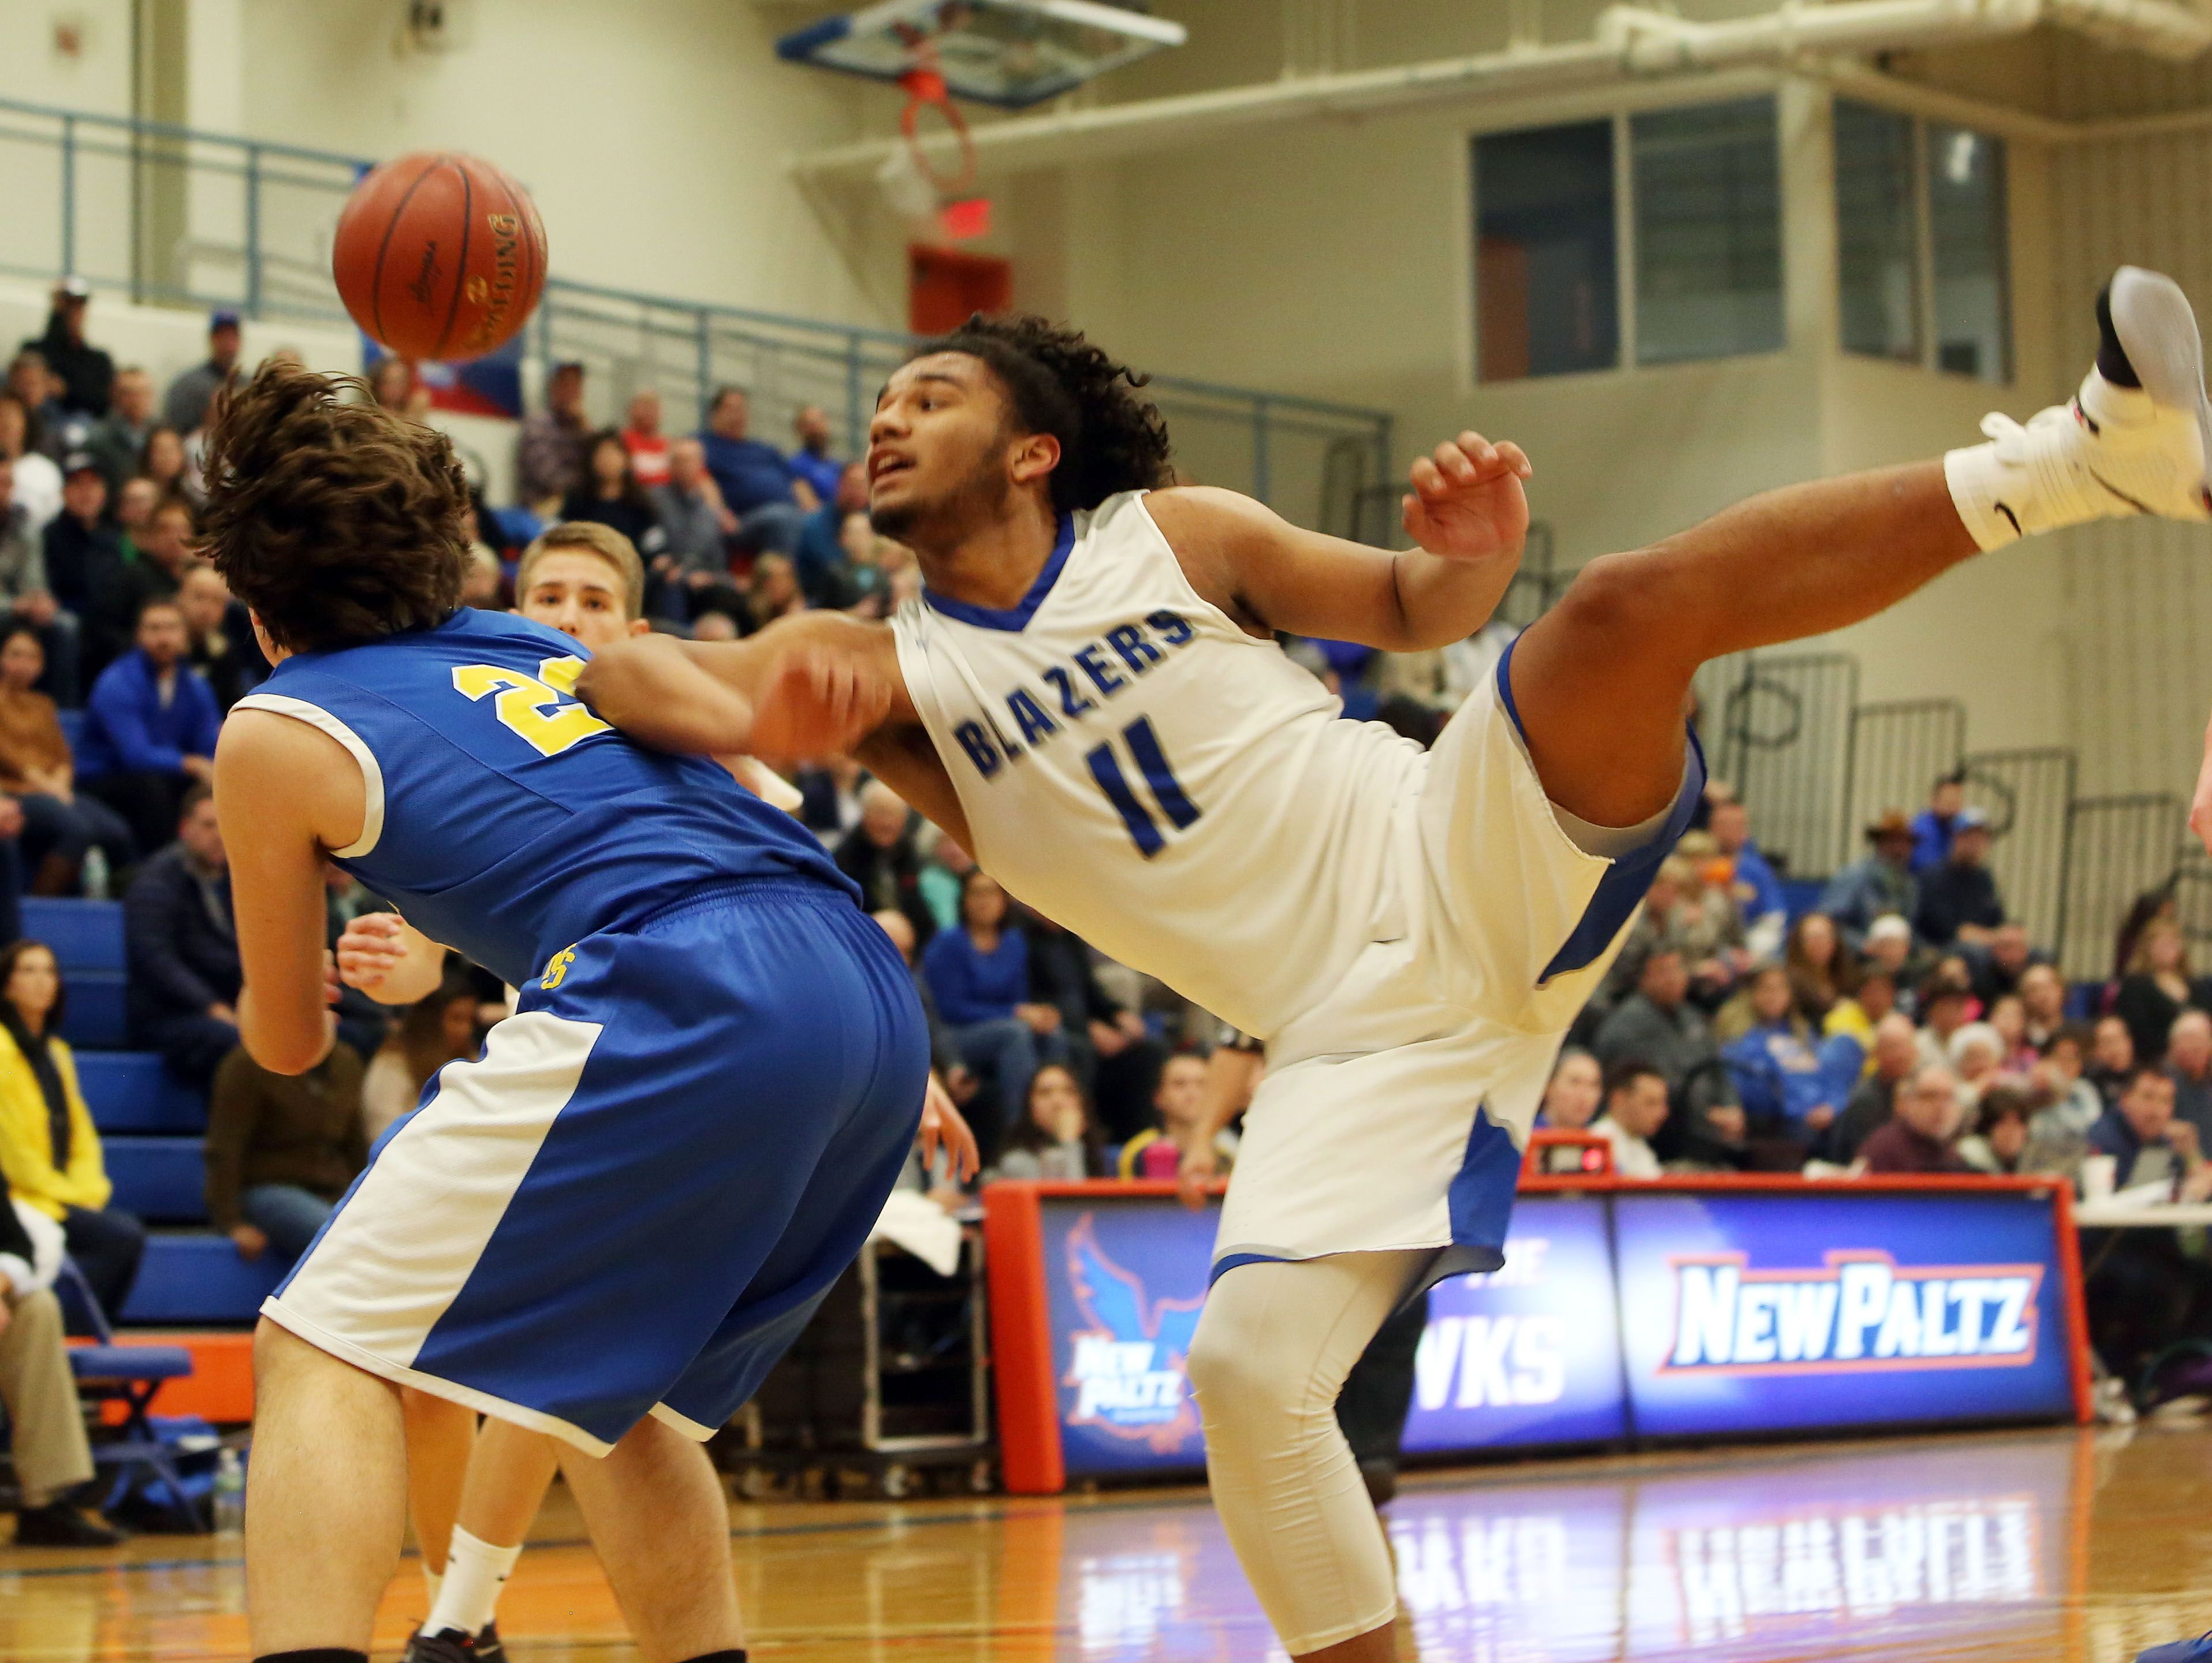 Millbrook High School's Drew Jackson, center, battles for a rebound with North Salem's Miles D'Alessandro during a Class C state regional semifinal at SUNY New Paltz on Tuesday.